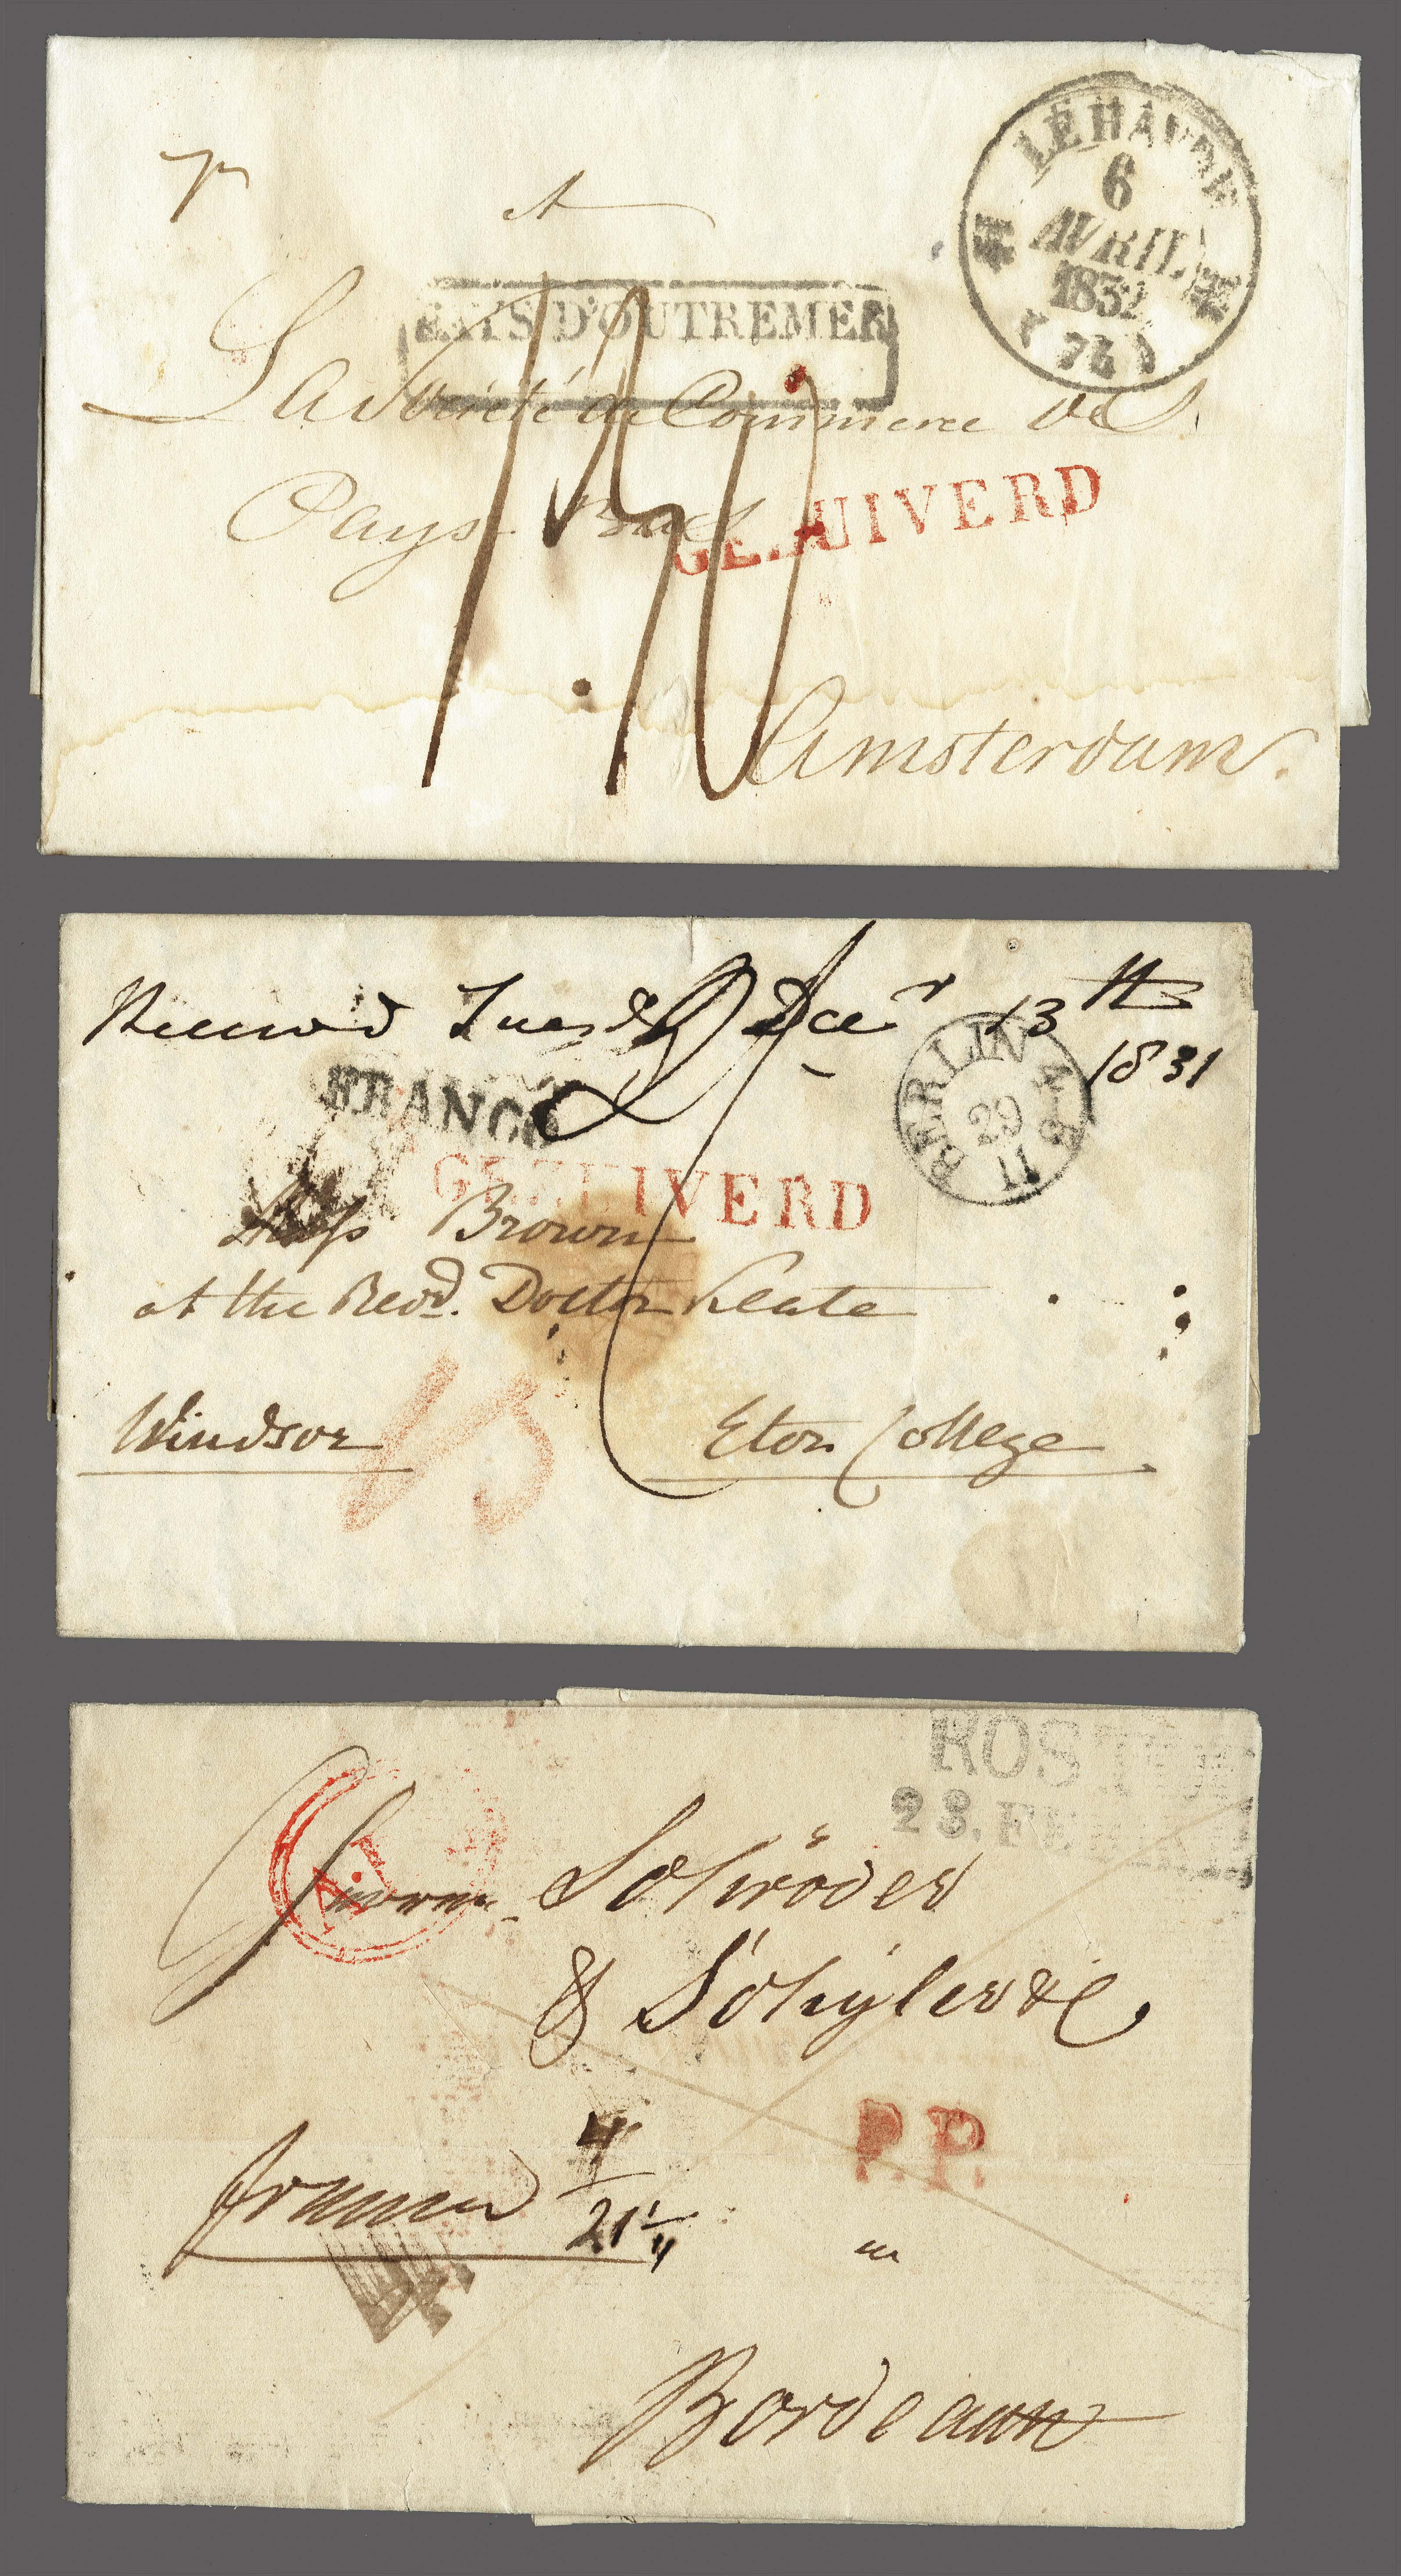 Lot 2462 - Netherlands and former colonies Netherlands -  Corinphila Veilingen Auction 250-253 - Day 3 - Netherlands and former colonies - Single lots & Picture postcards